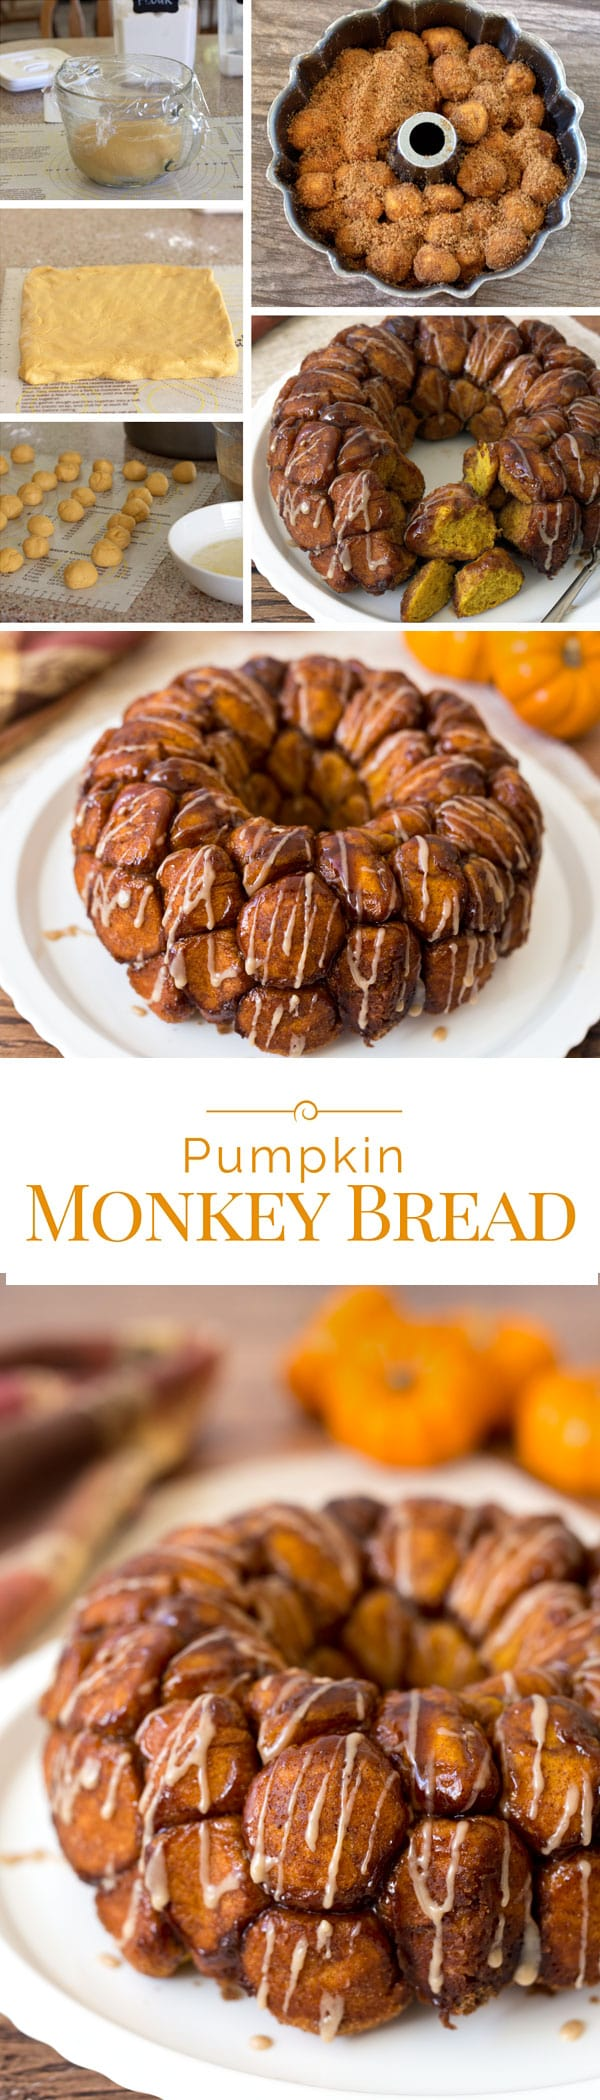 Overnight-Pumpkin-Monkey-Bread-with-Maple-Icing-Collage-2-Barbara-Bakes